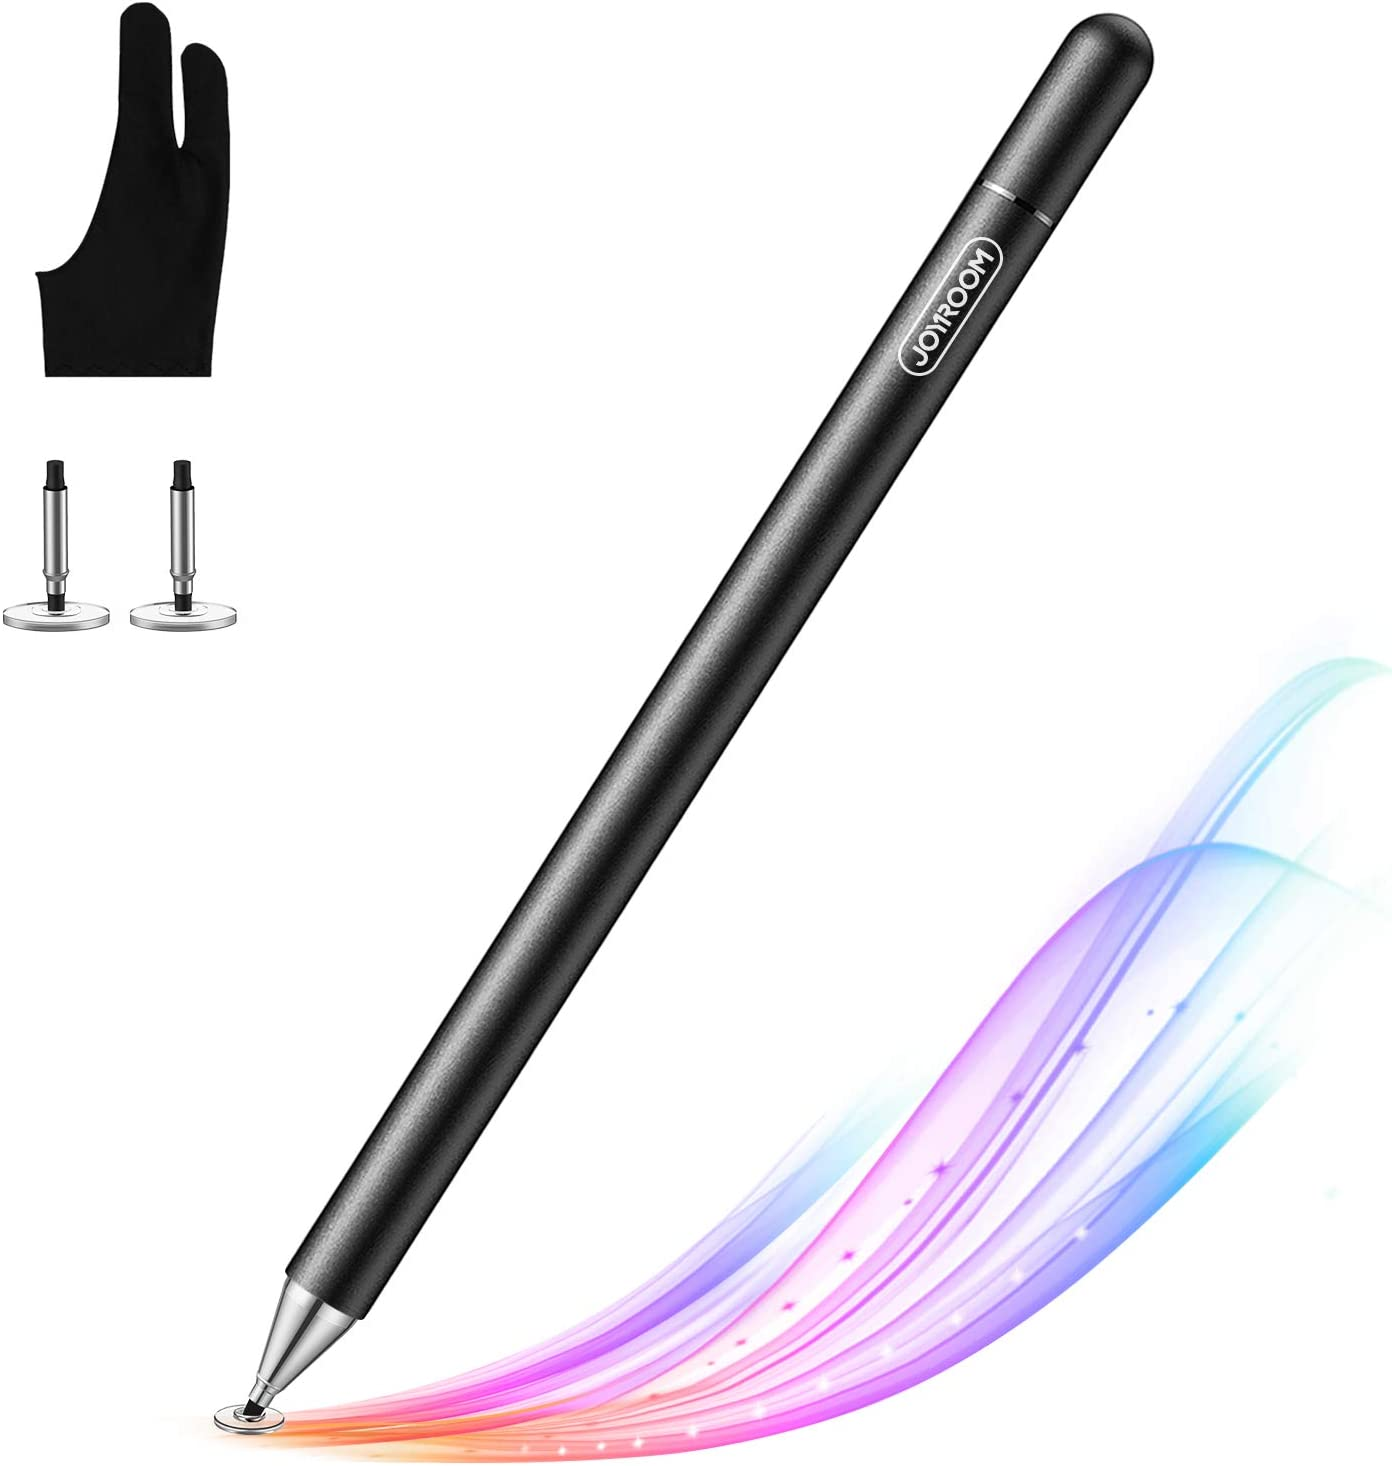 Stylus pens for ipad Pencil, with Palm Rejection Glove(Palm Rejection), 2021 Updated Capacitive Touch Screen Pens for Kid Student Drawing, Writing, for/Phone/iPad/Android/Surface (Black)